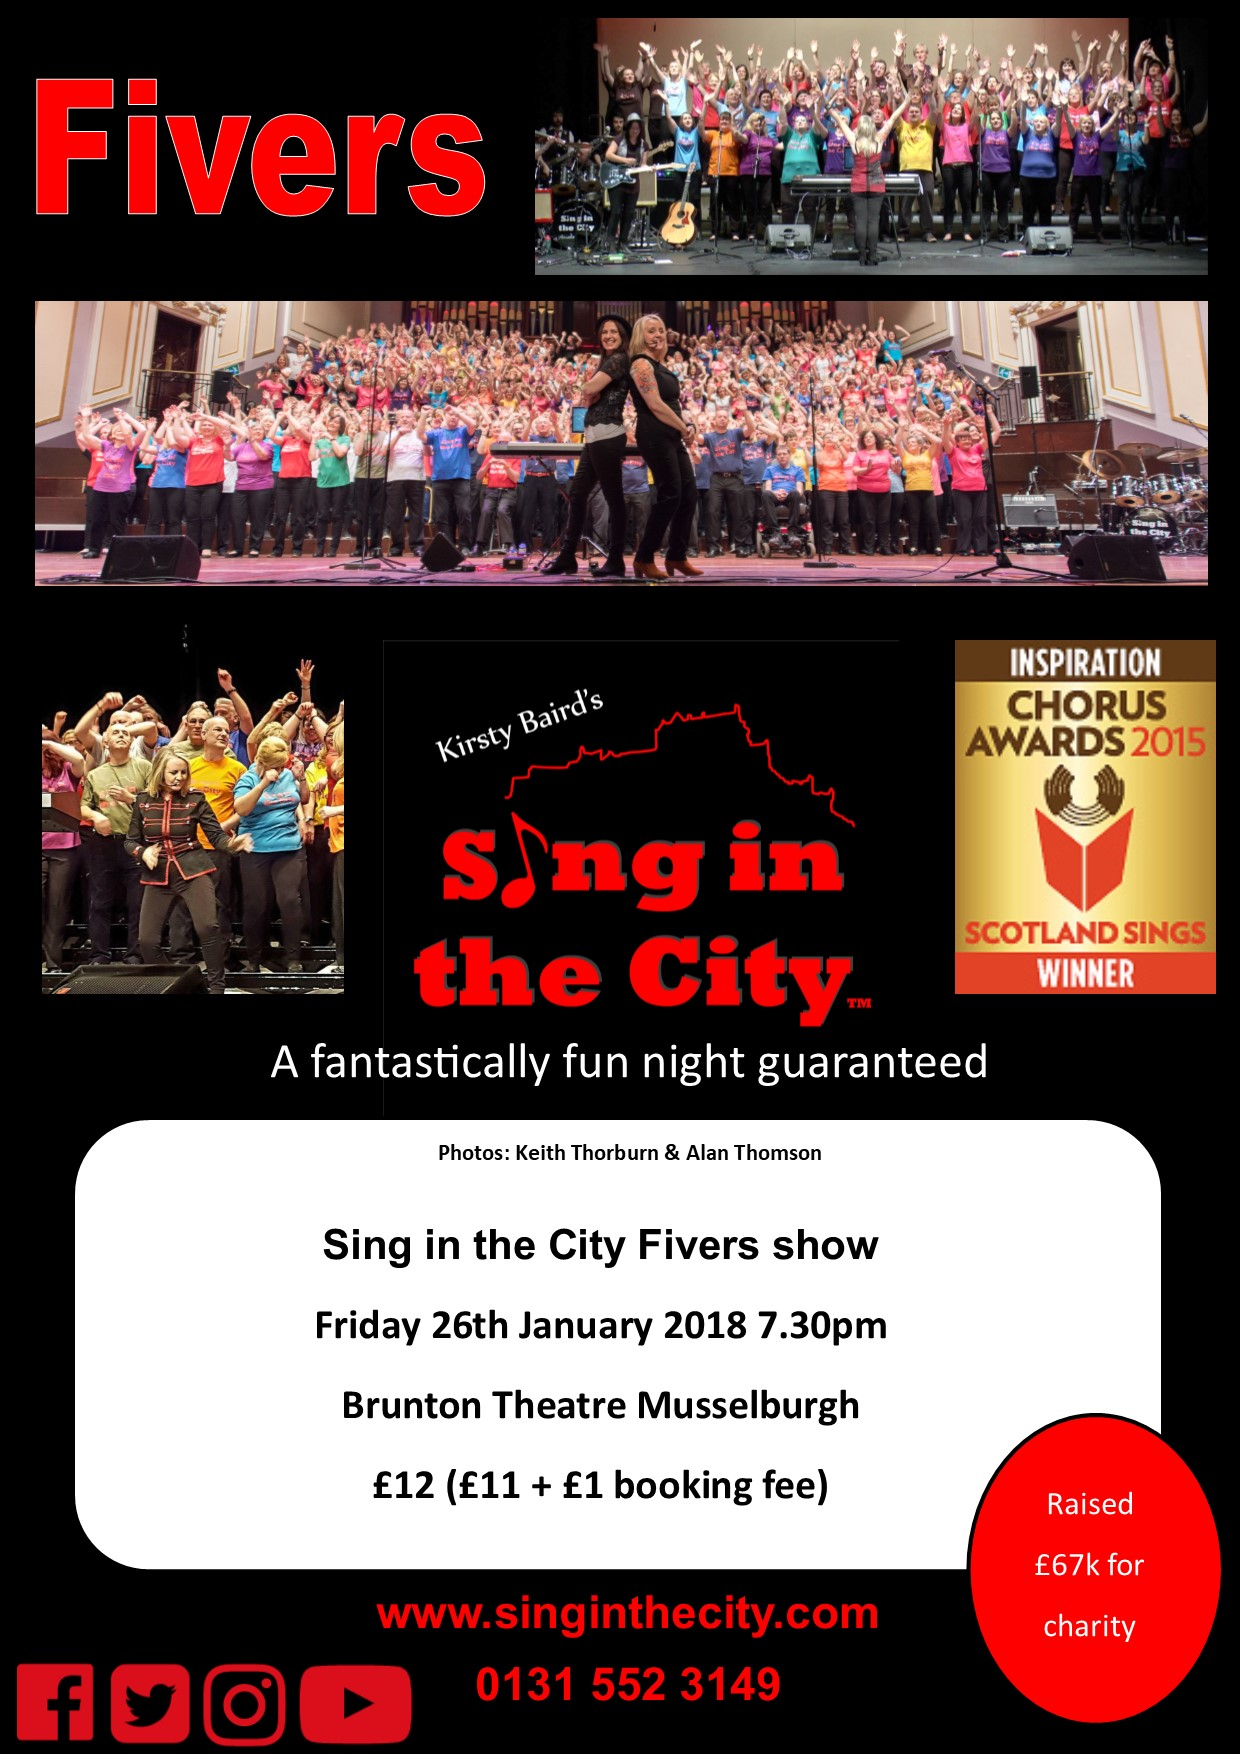 Poster for Sing in the City Fivers @ Brunton Theatre